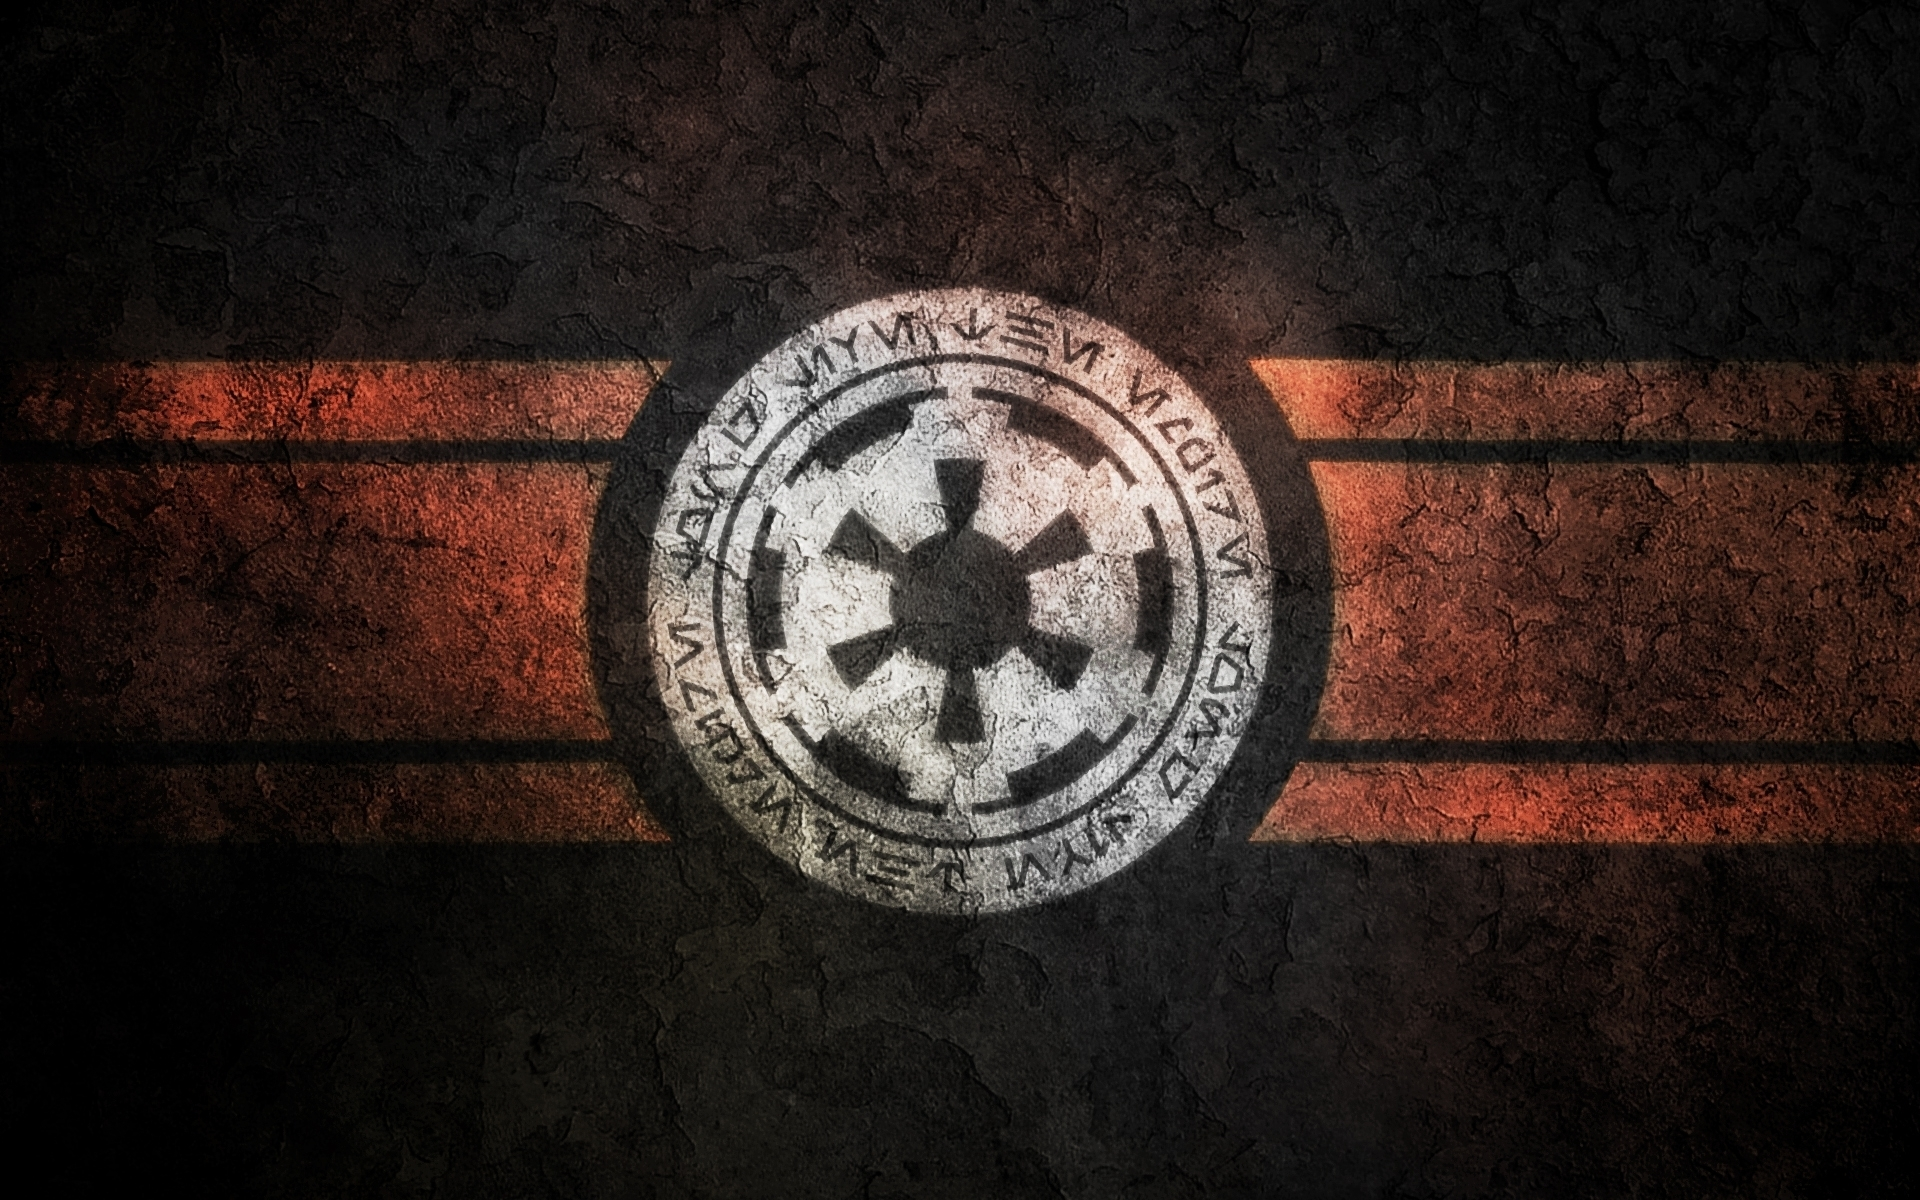 Star Wars The Old Republic I11 Hd Wallpaper